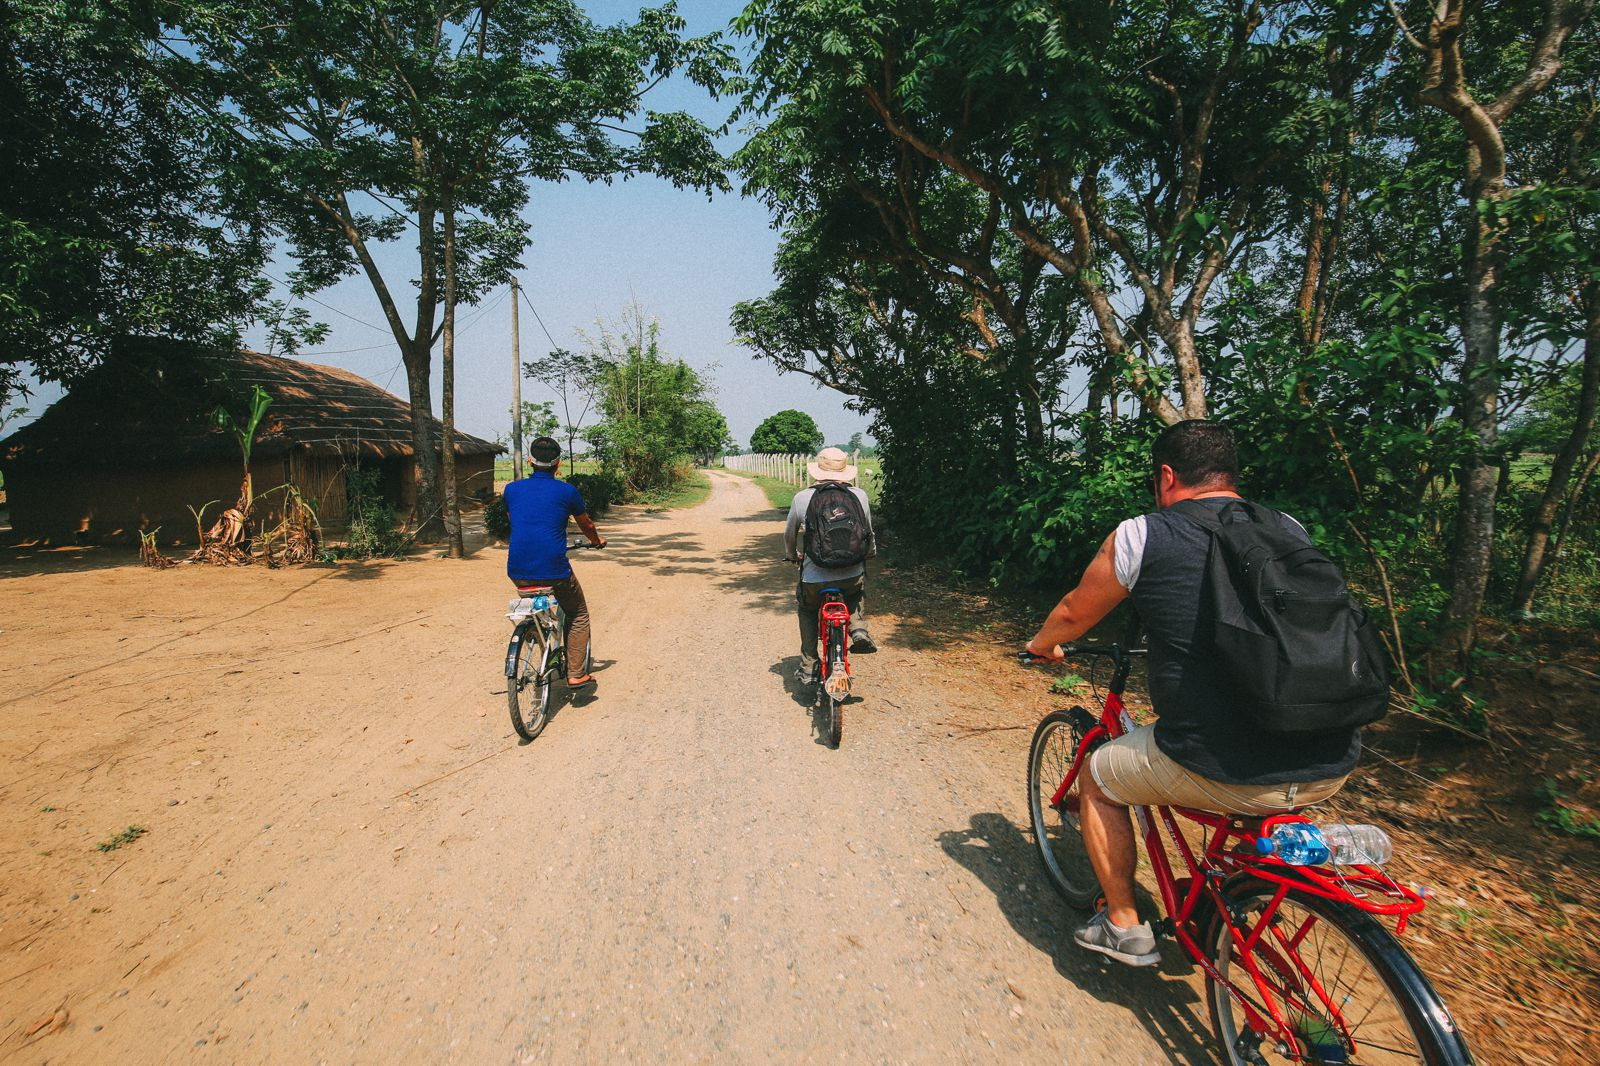 The Sights, Sounds And People Of Chitwan, Nepal (36)